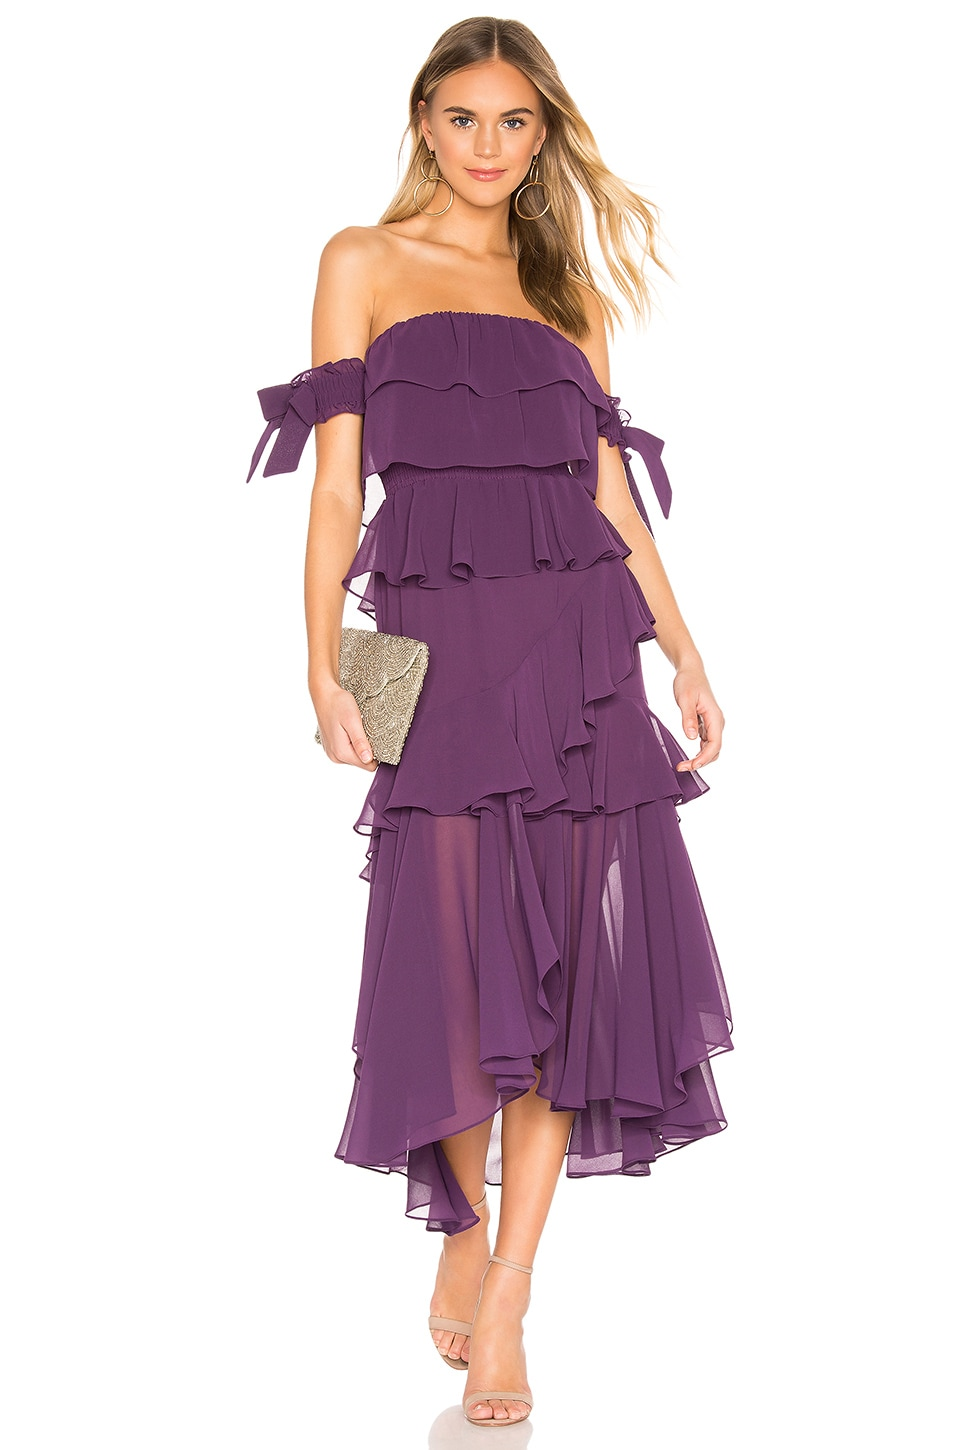 MISA Los Angeles Isidora Dress in Purple